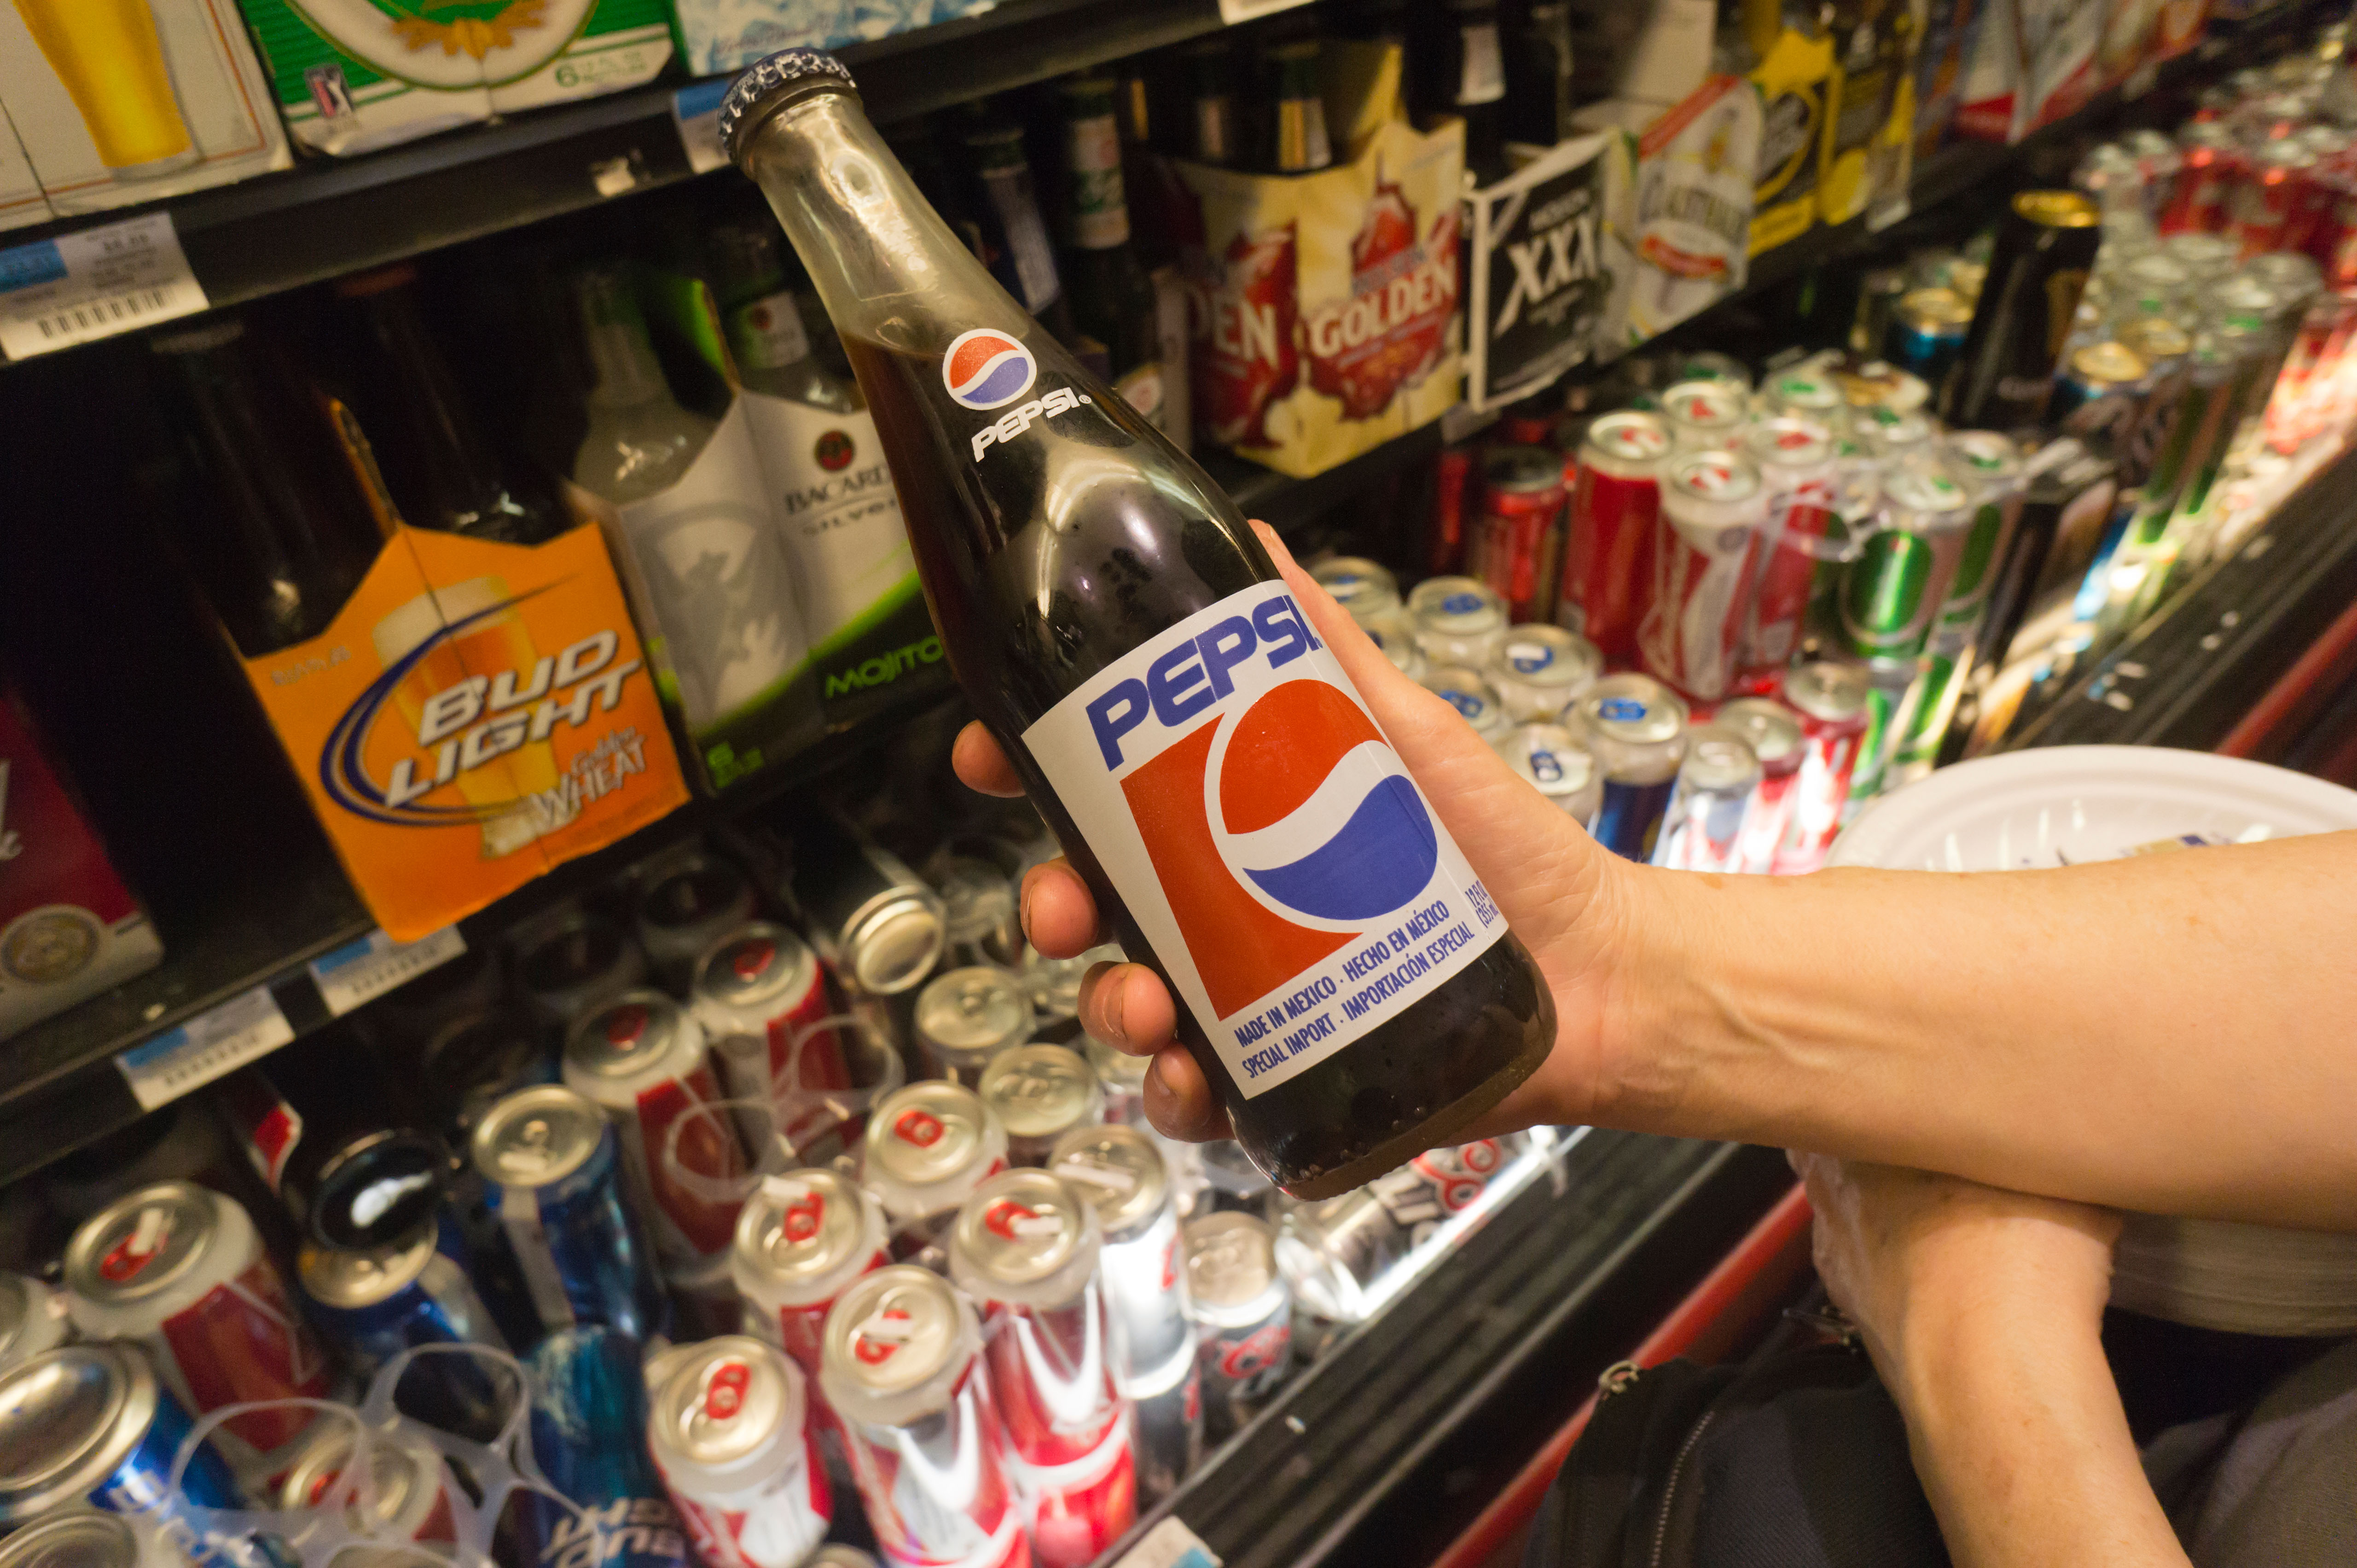 A customer contemplates the purchase of a glass bottle of Pepsi, made in Mexico, in a supermarket in New York.